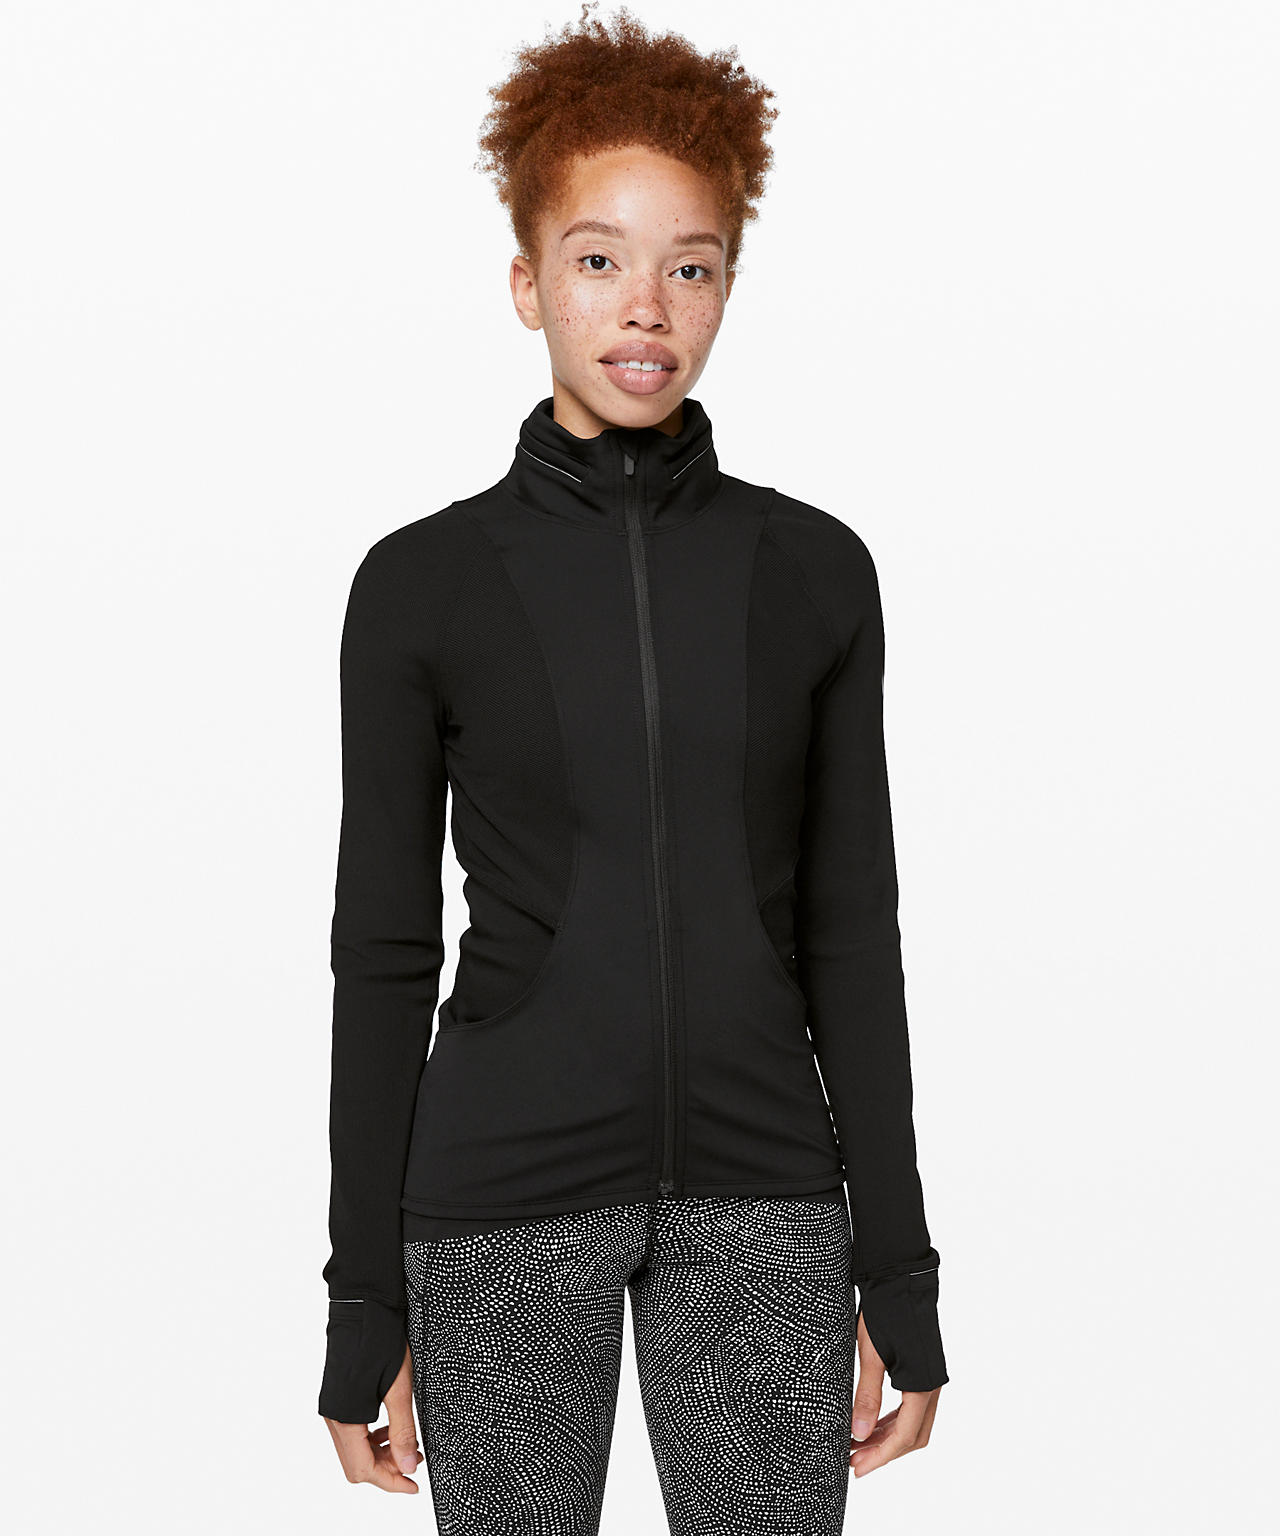 Far and Free Jacket, What's New At Lululemon